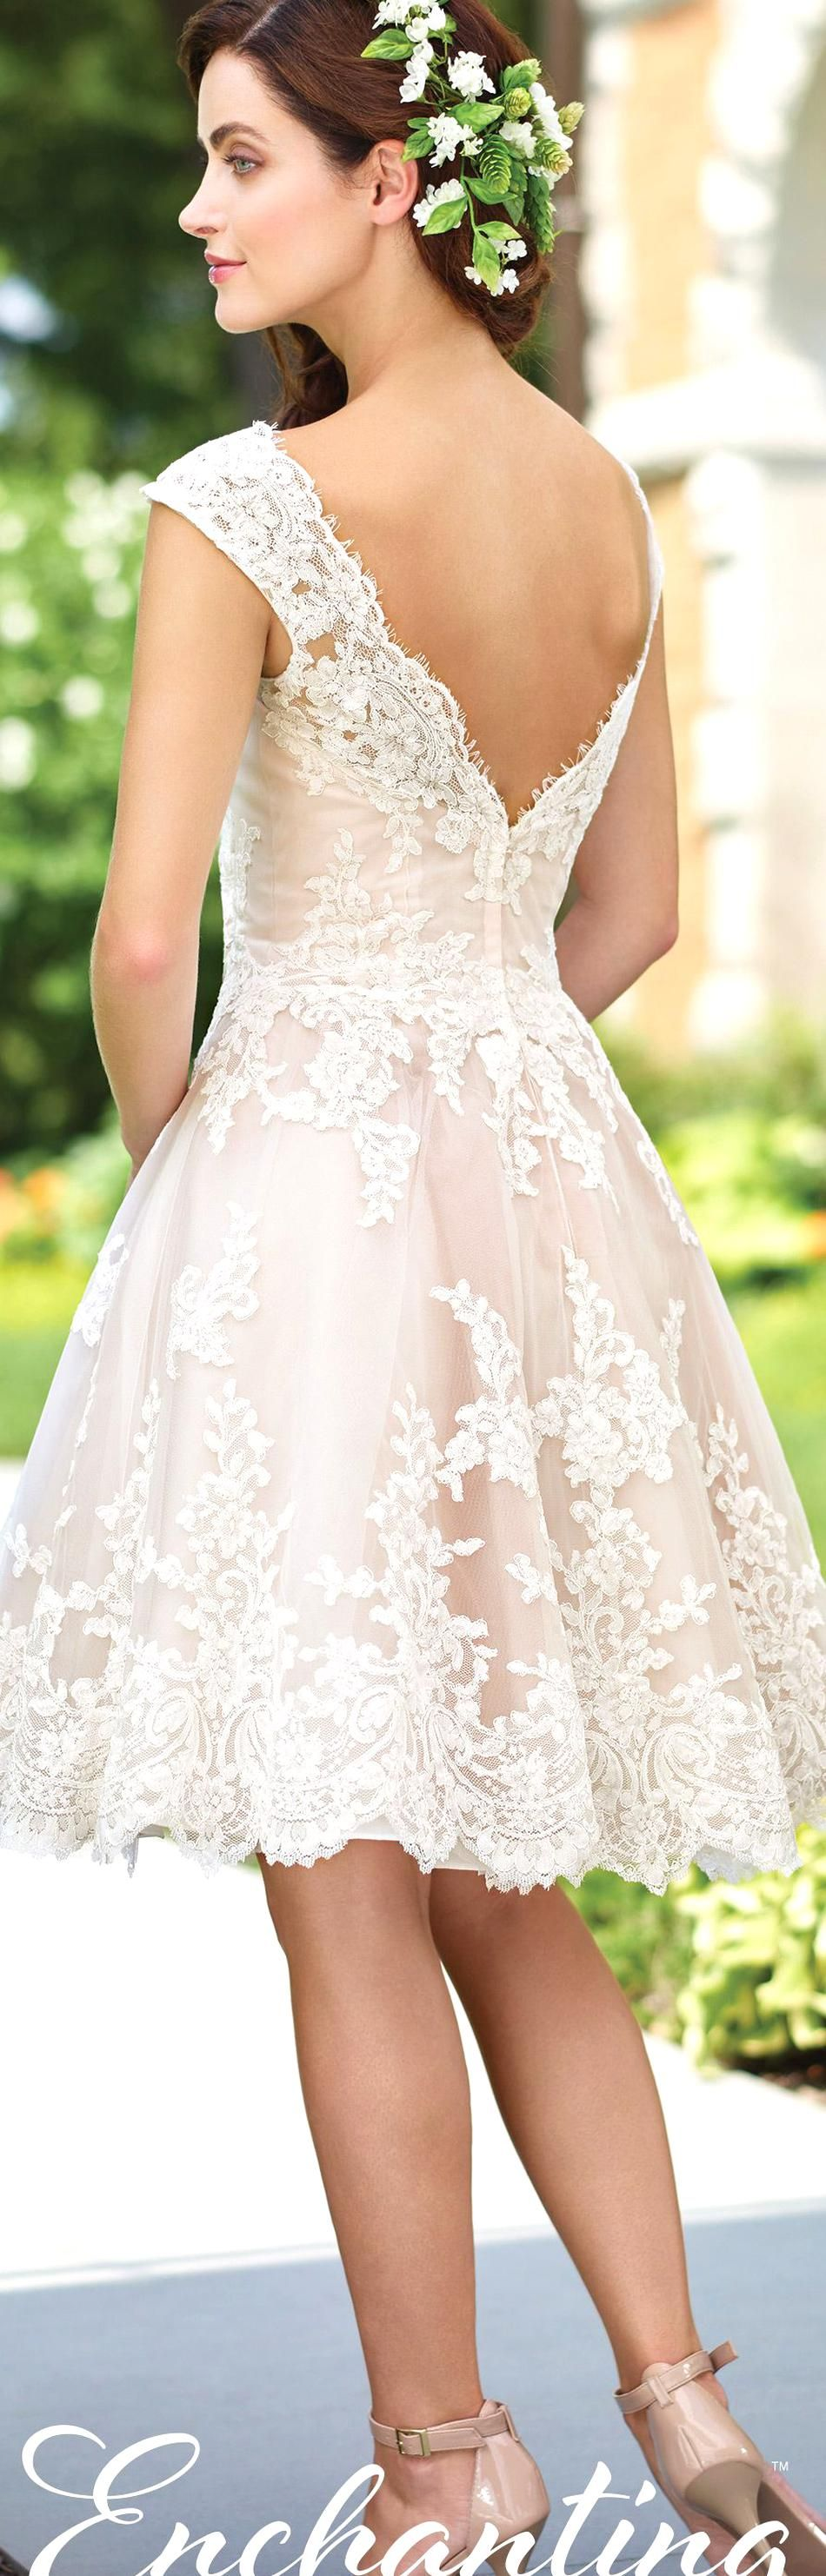 Enchanting By Mon Cheri Spring 2017 Wedding Gown Collection Style No 117185 Lace Short Wedding Dres In 2020 Blush Bridal Gowns Wedding Dresses Wedding Dresses 2017